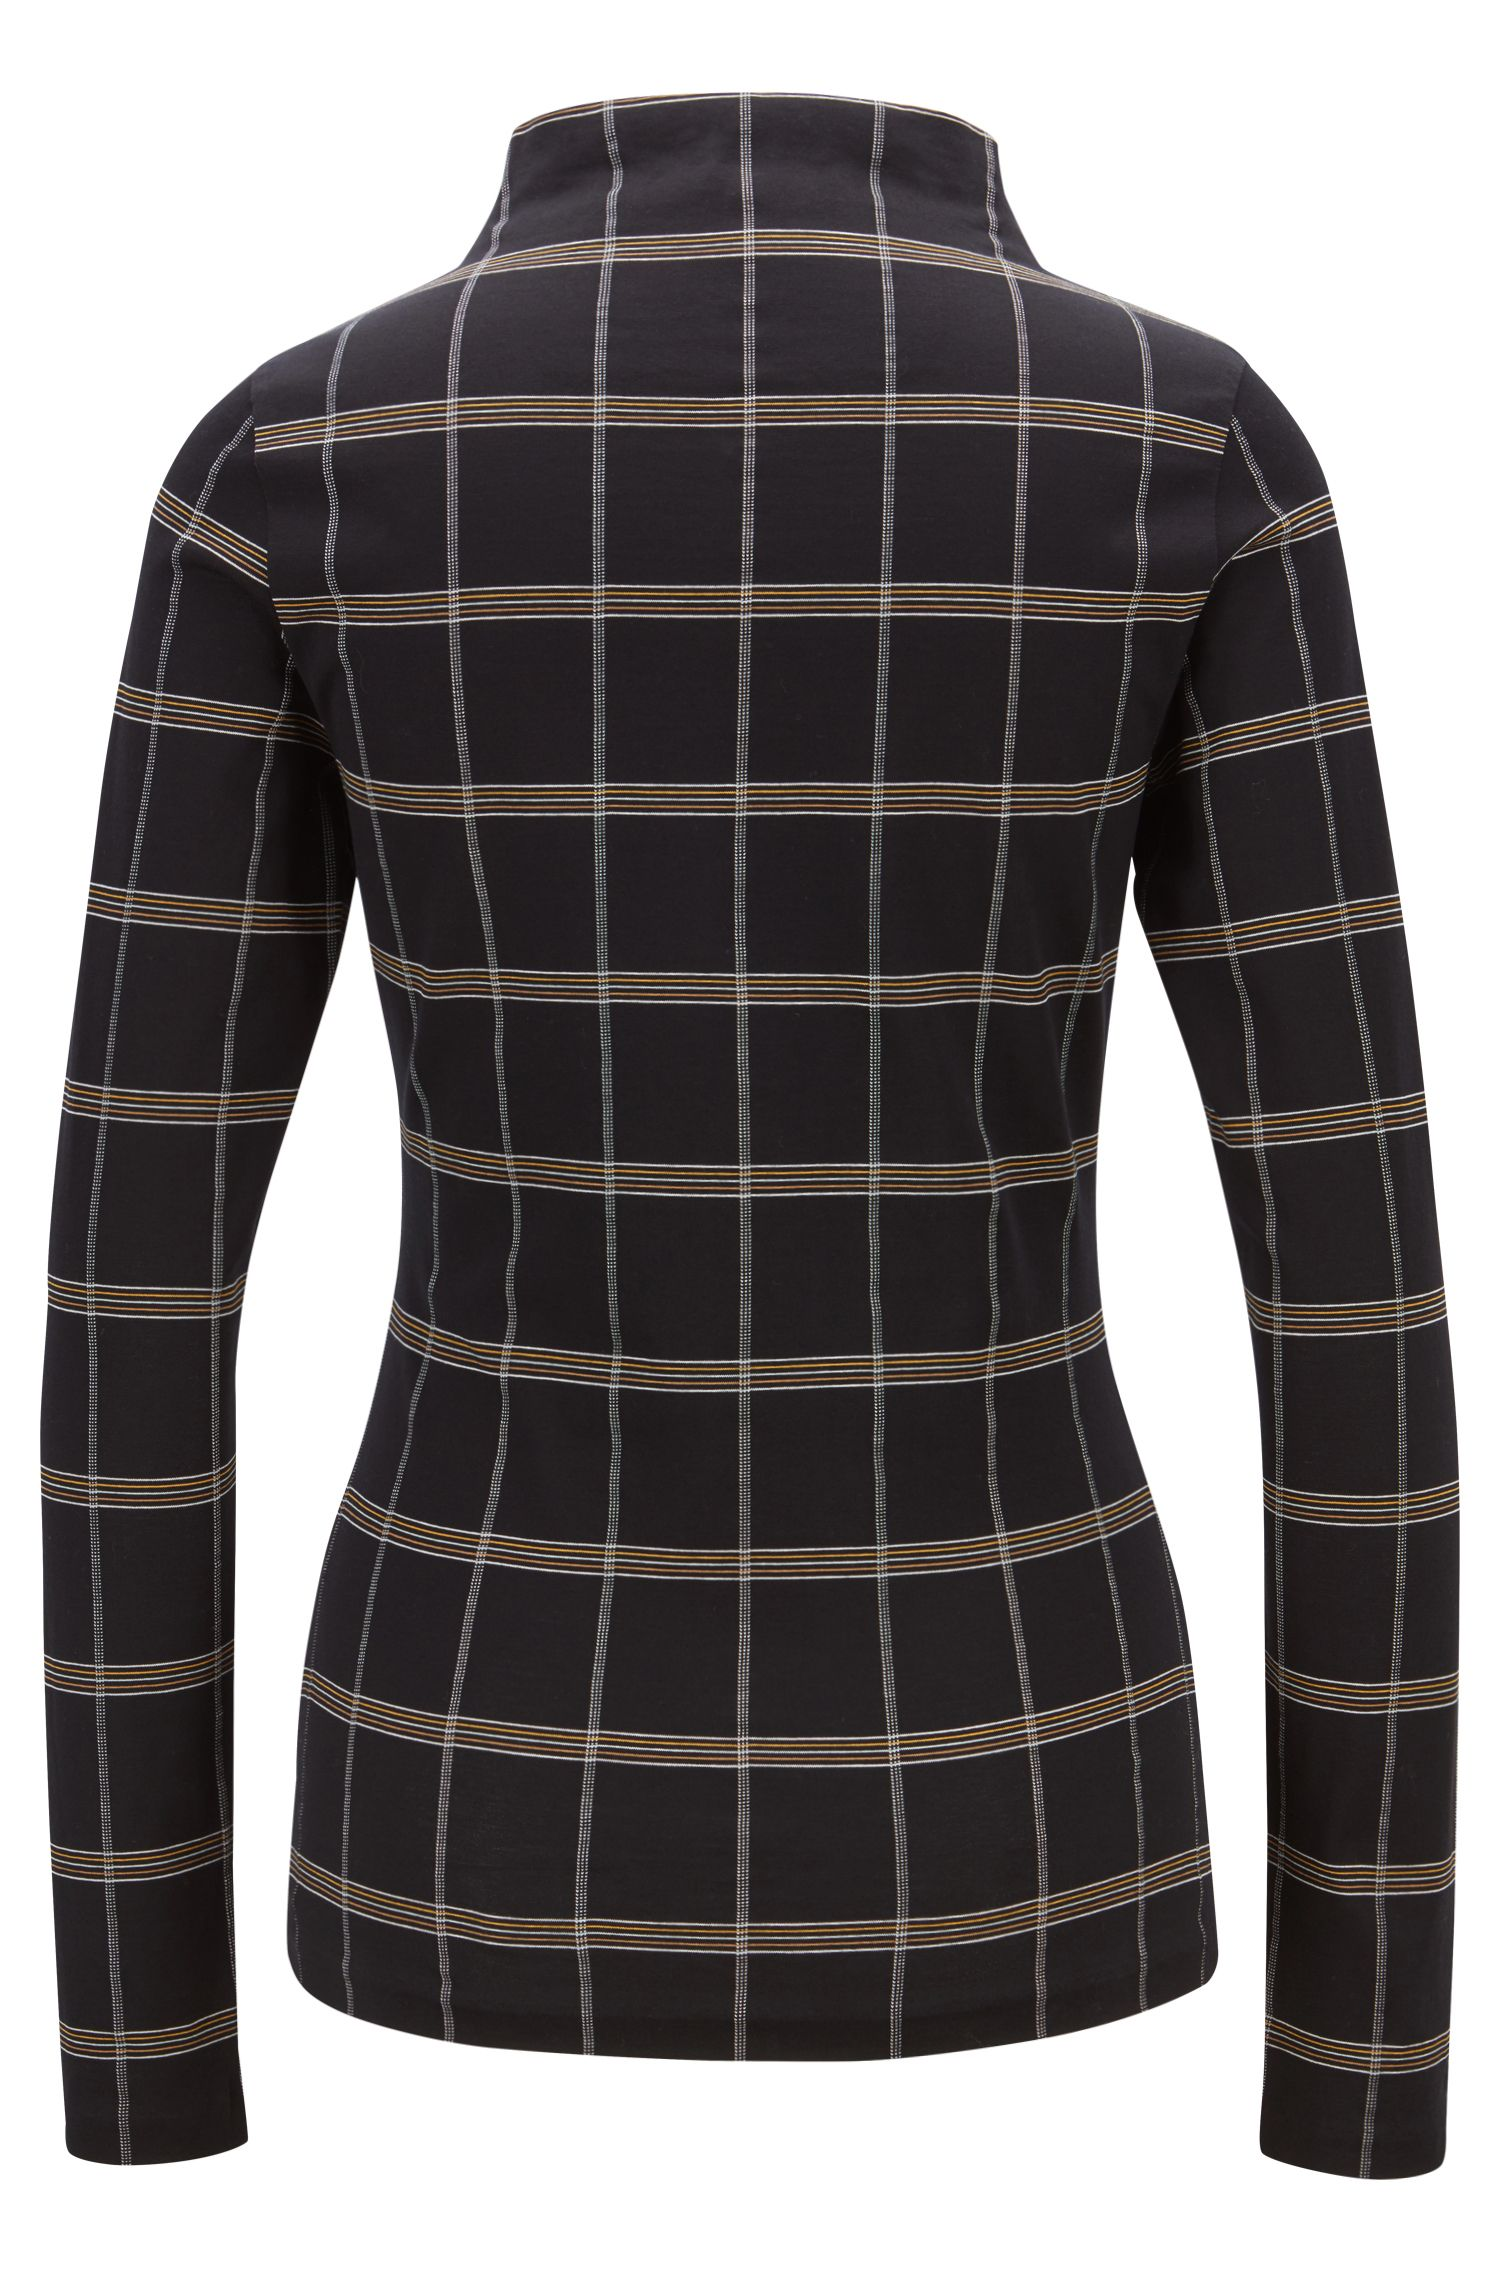 Funnel-neck top in checked jersey jacquard, Patterned